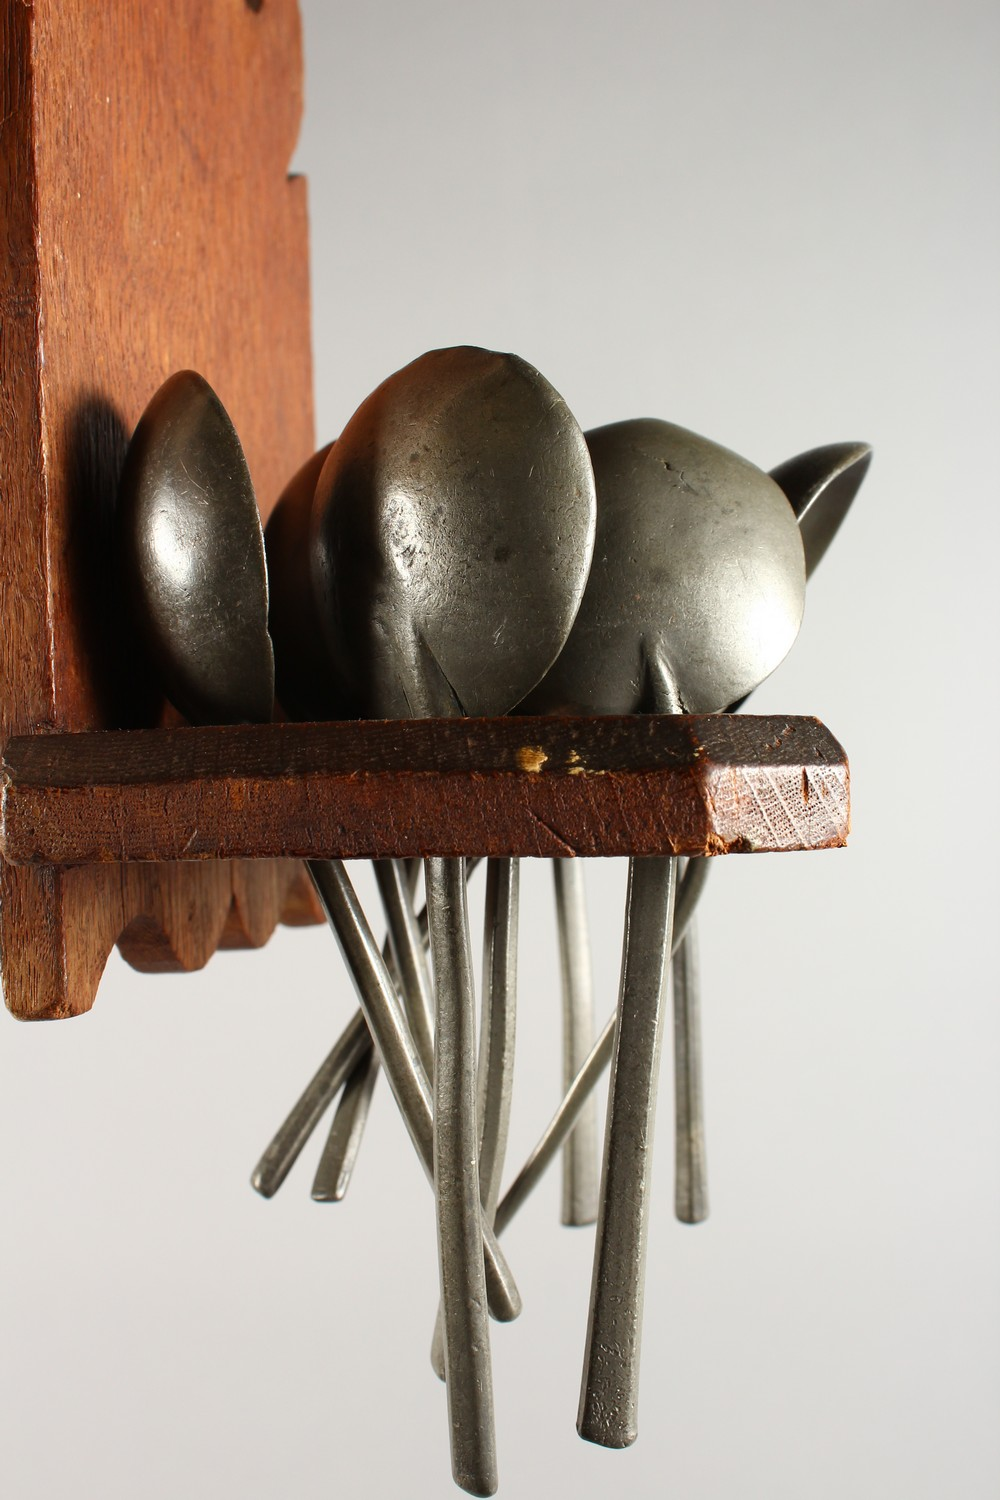 Lot 1494 - AN OAK SPOON RACK, with ten pewter spoons. 10.5ins high.